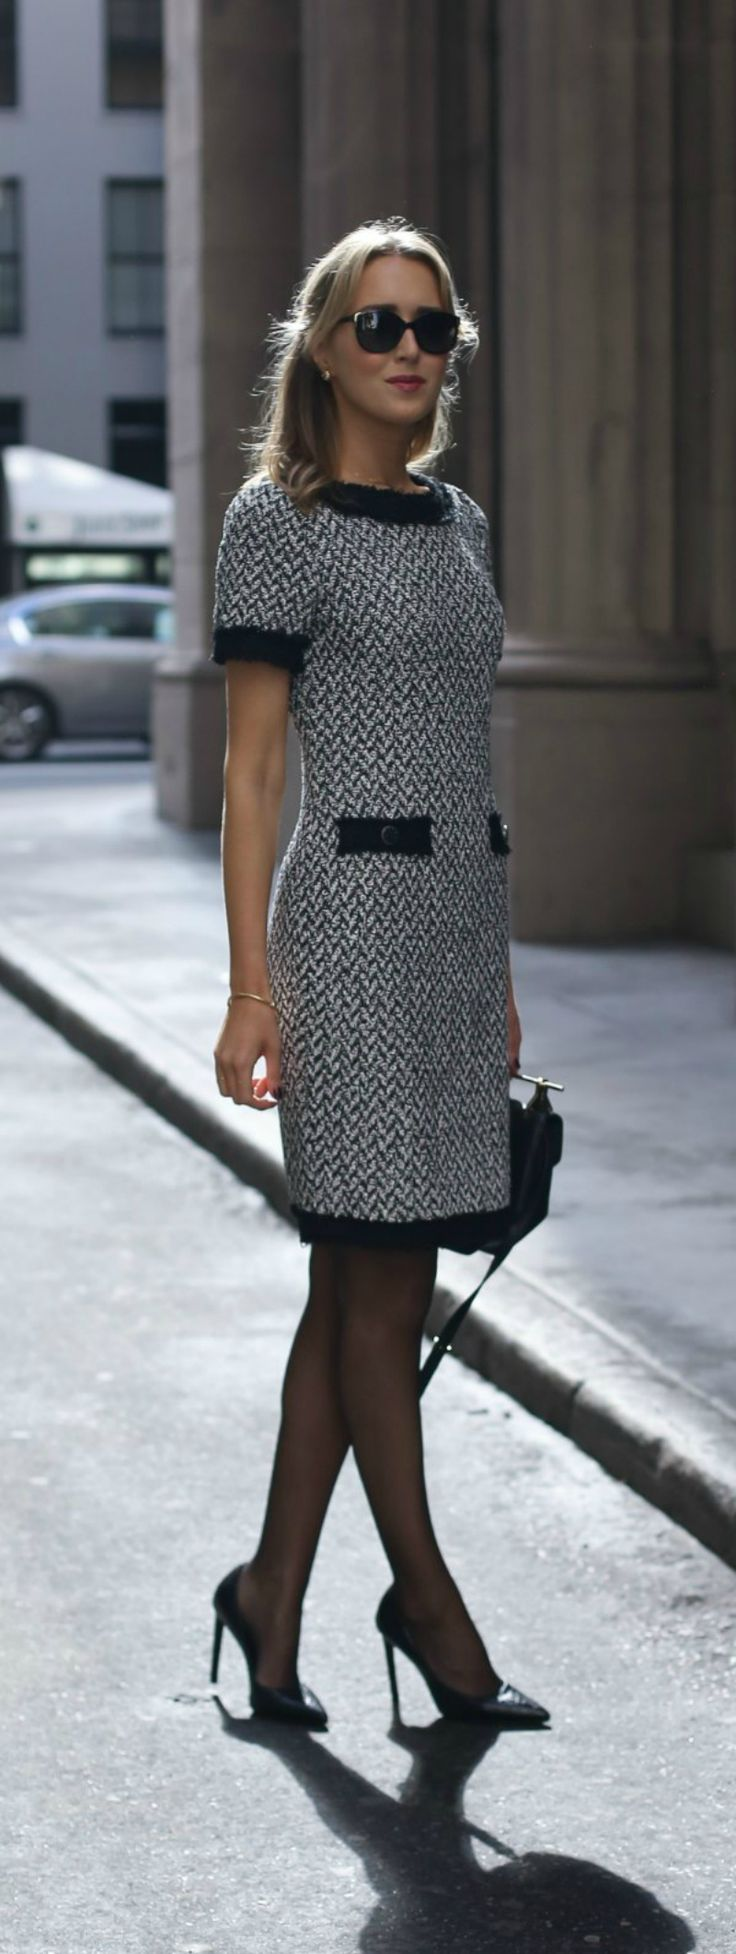 #30DRESSESin30DAYS - Day 5 Client Meeting - Black and white herringbone tweed sheath dress with black accents around sleeves and collar perfect for business formal client meetings in fall and winter! {st. john knits, saint laurent, prada, m2malletier}